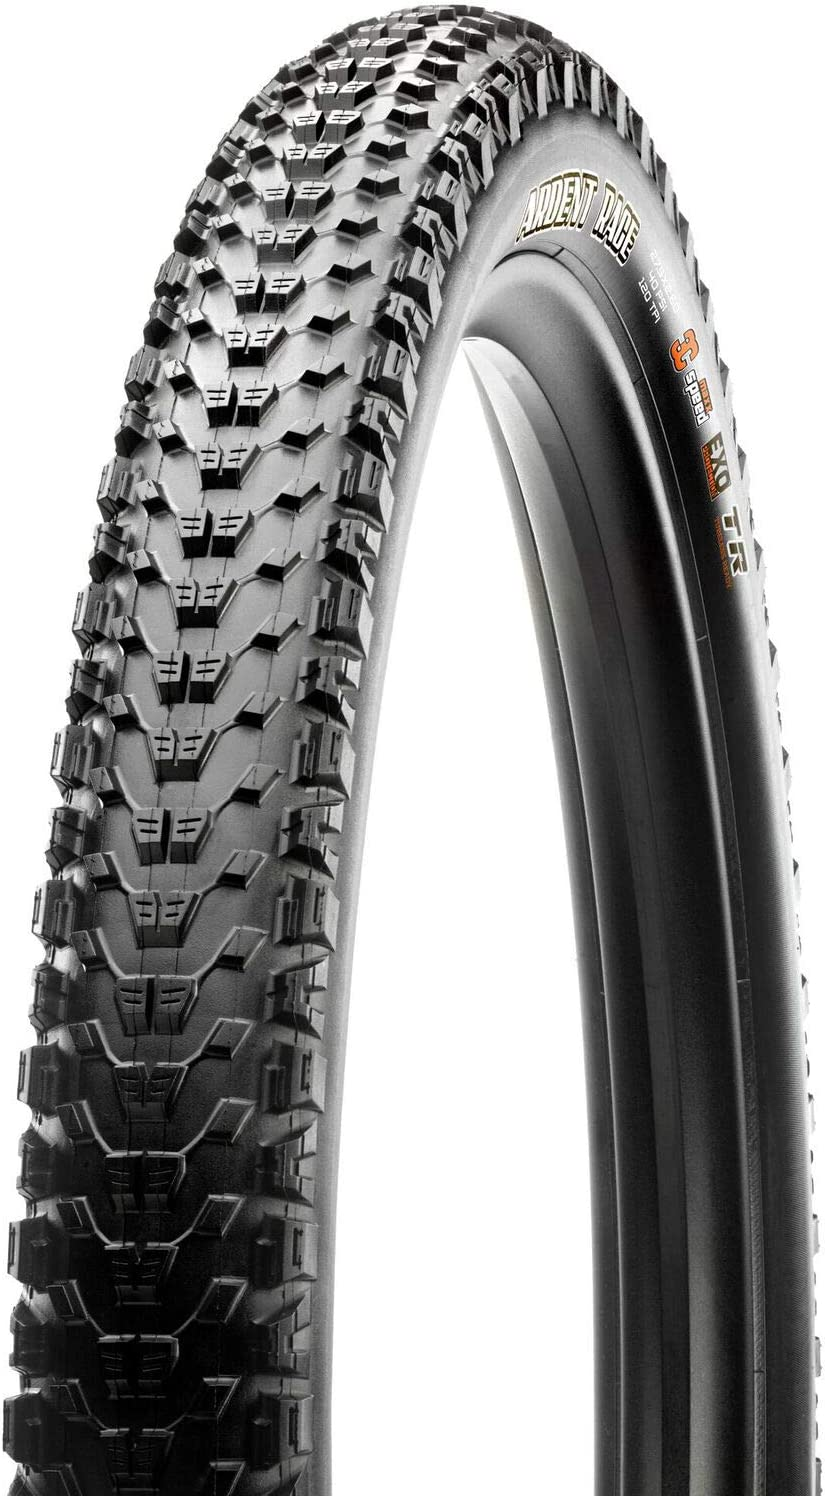 Maxxis Ardent Race Mountain Bike Tire 27.5 x 2.6  EXO Casing Tubeless